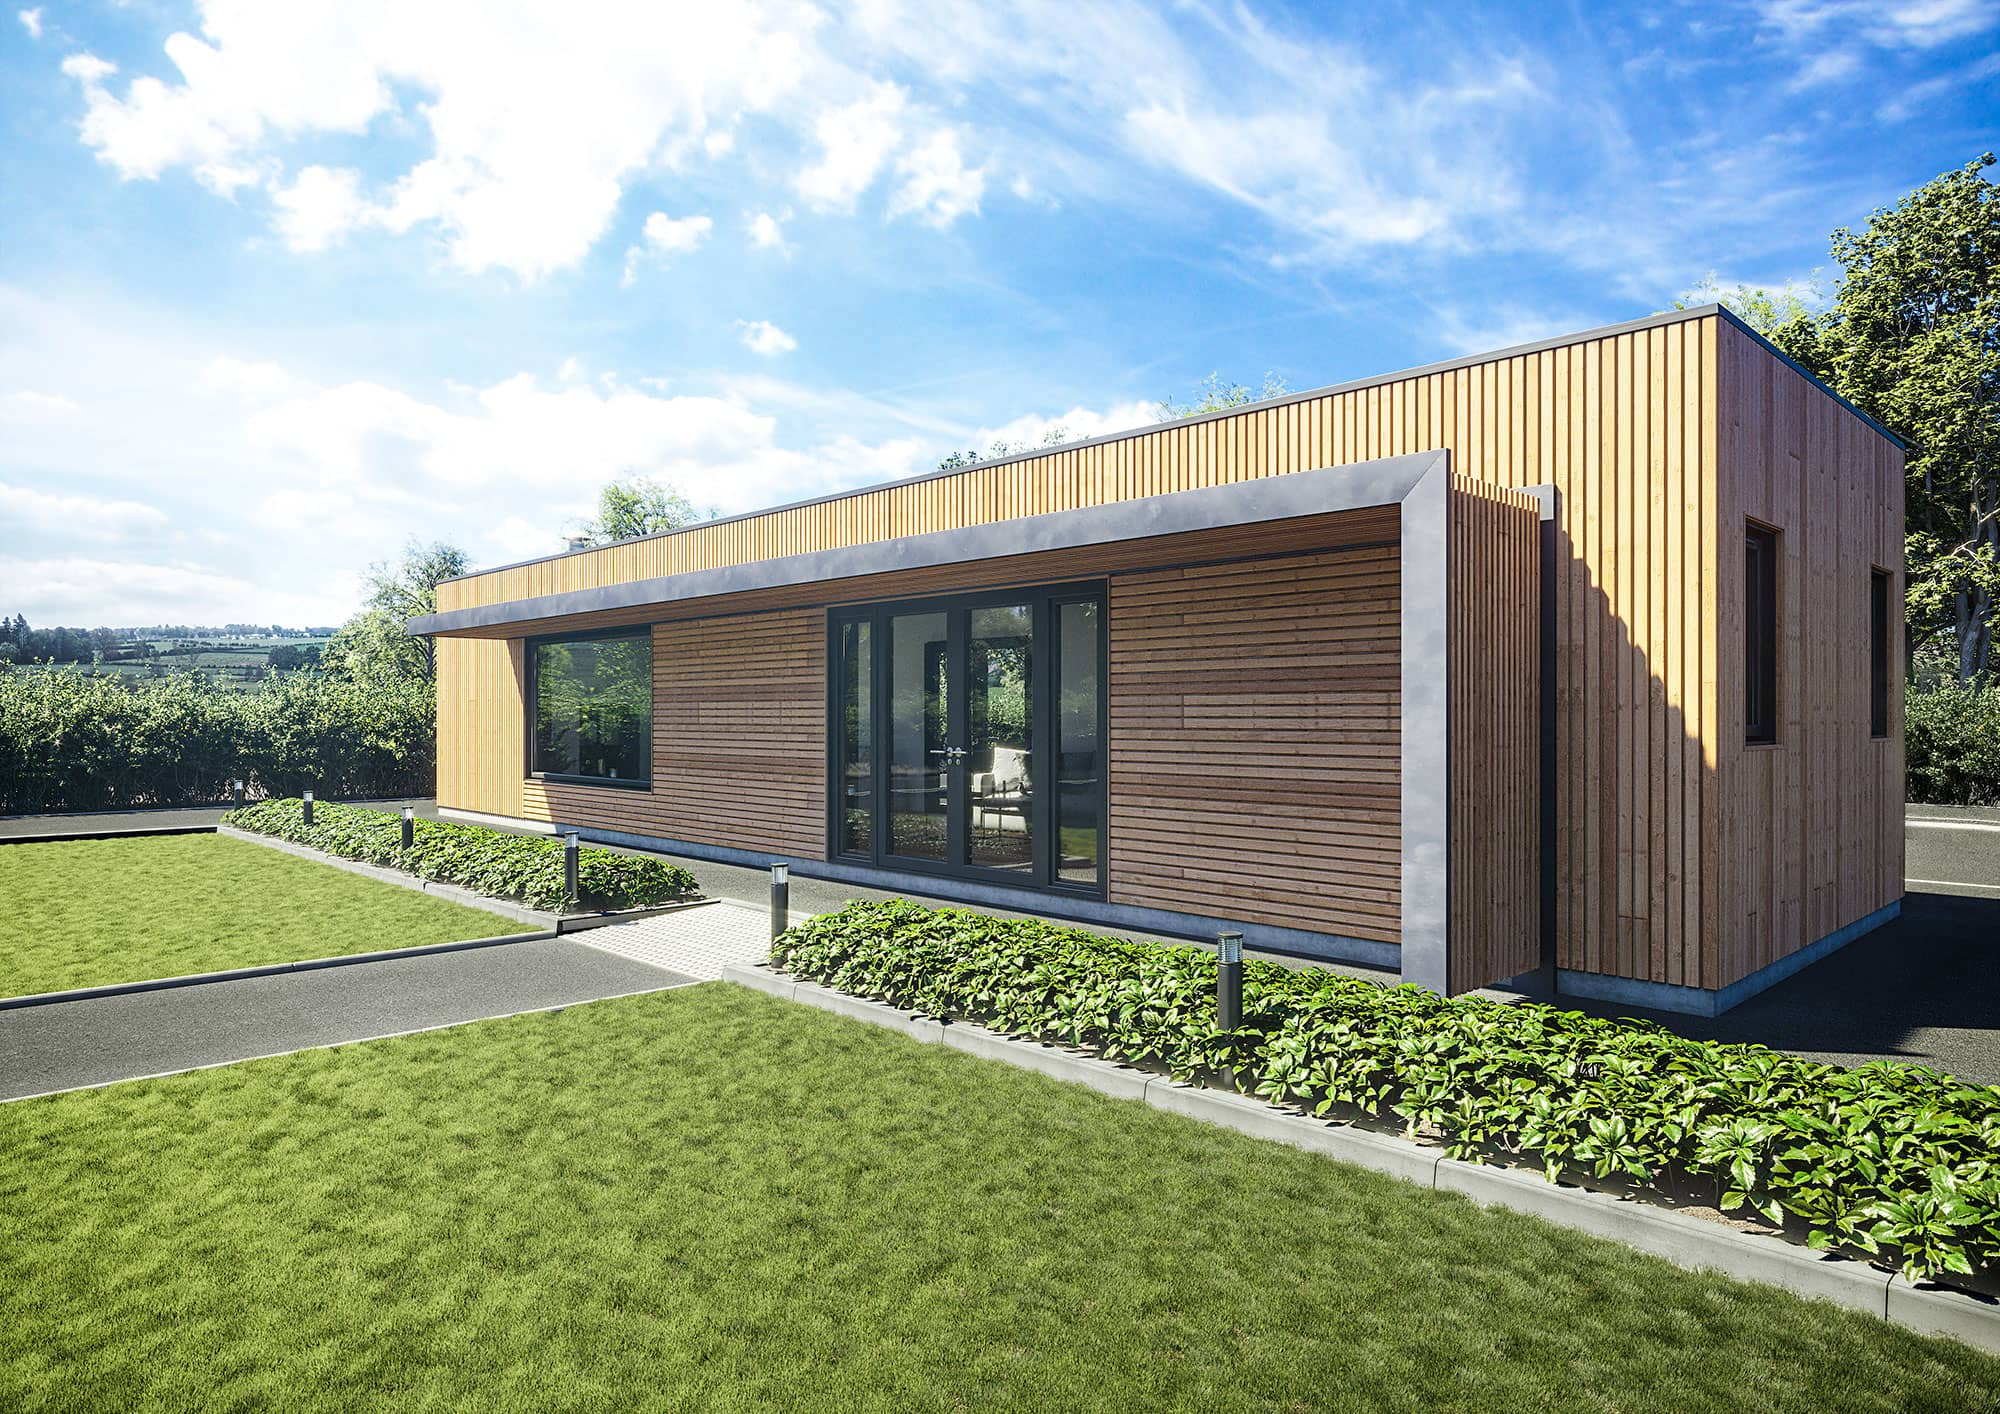 3 Reasons Why Modular Buildings are Sustainable